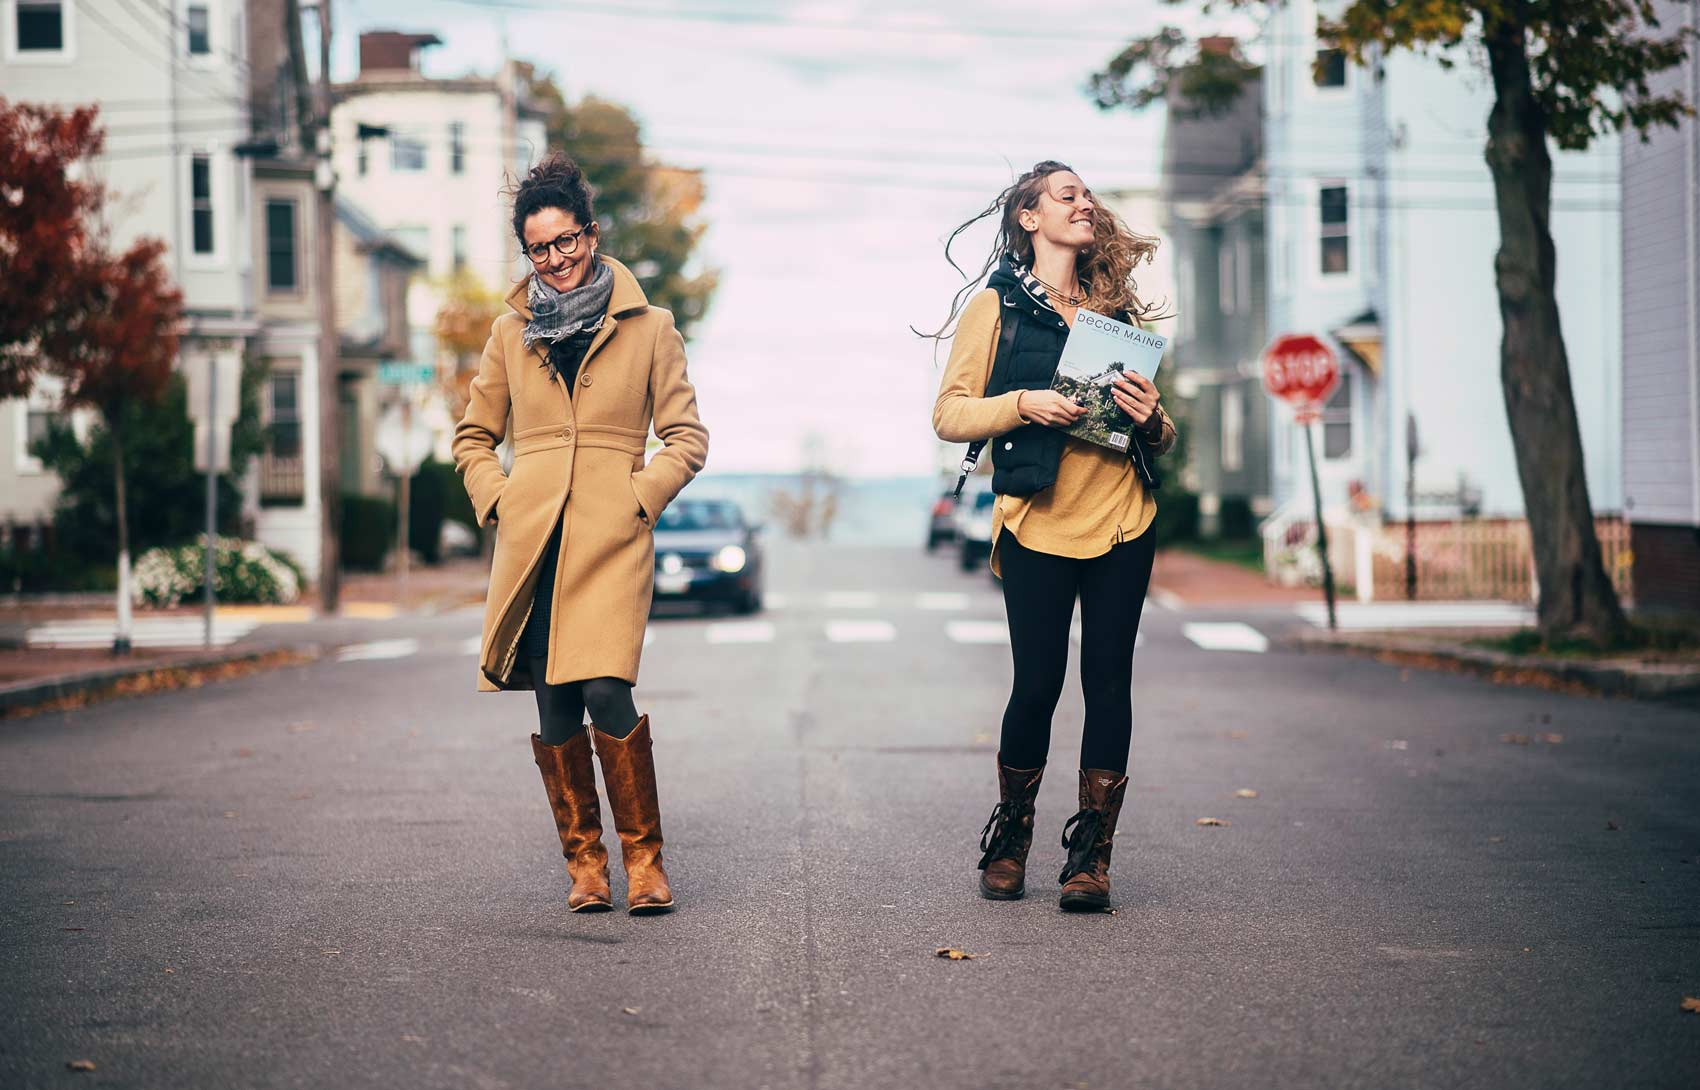 Writer/photographer duo Susan Grisanti and Lauryn Hottinger recently spent a Sunday wandering around Biddeford, equipped with a short list of recommendations from friends, an early dinner reservation at Elda, and a shared watchfulness. Their discoveries kindled a desire to share the experience in this column, which will continue every month in a new Maine town.